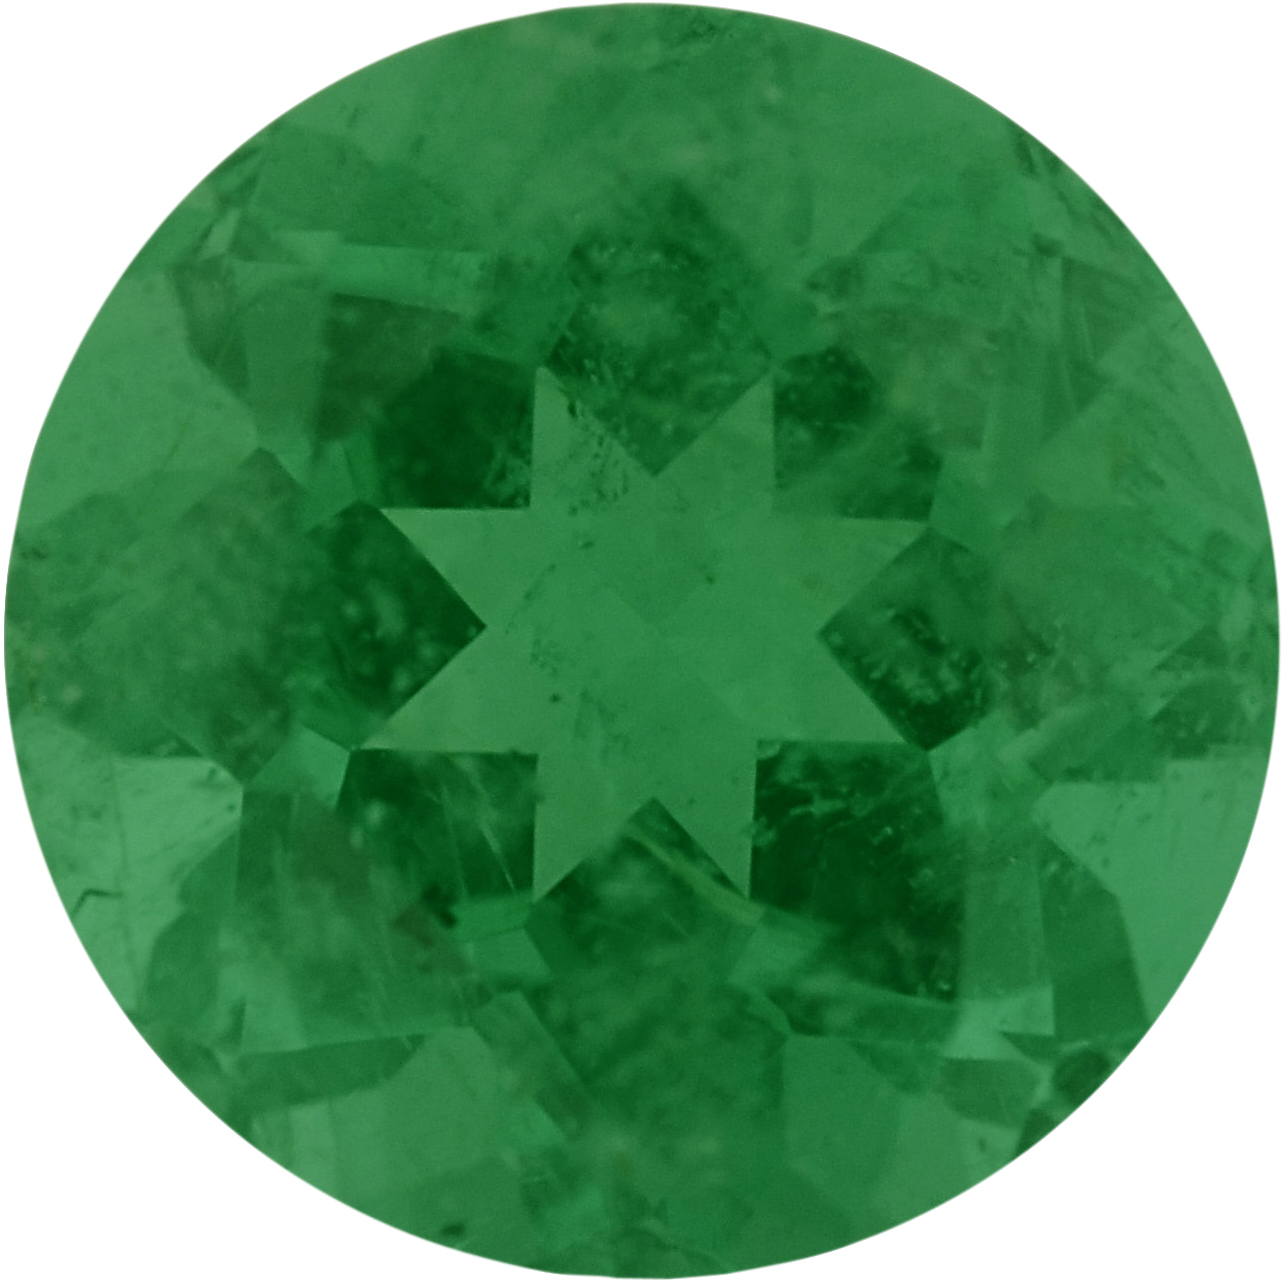 0.92 carats Emerald Loose Gemstone in Round Cut, 6.16 mm